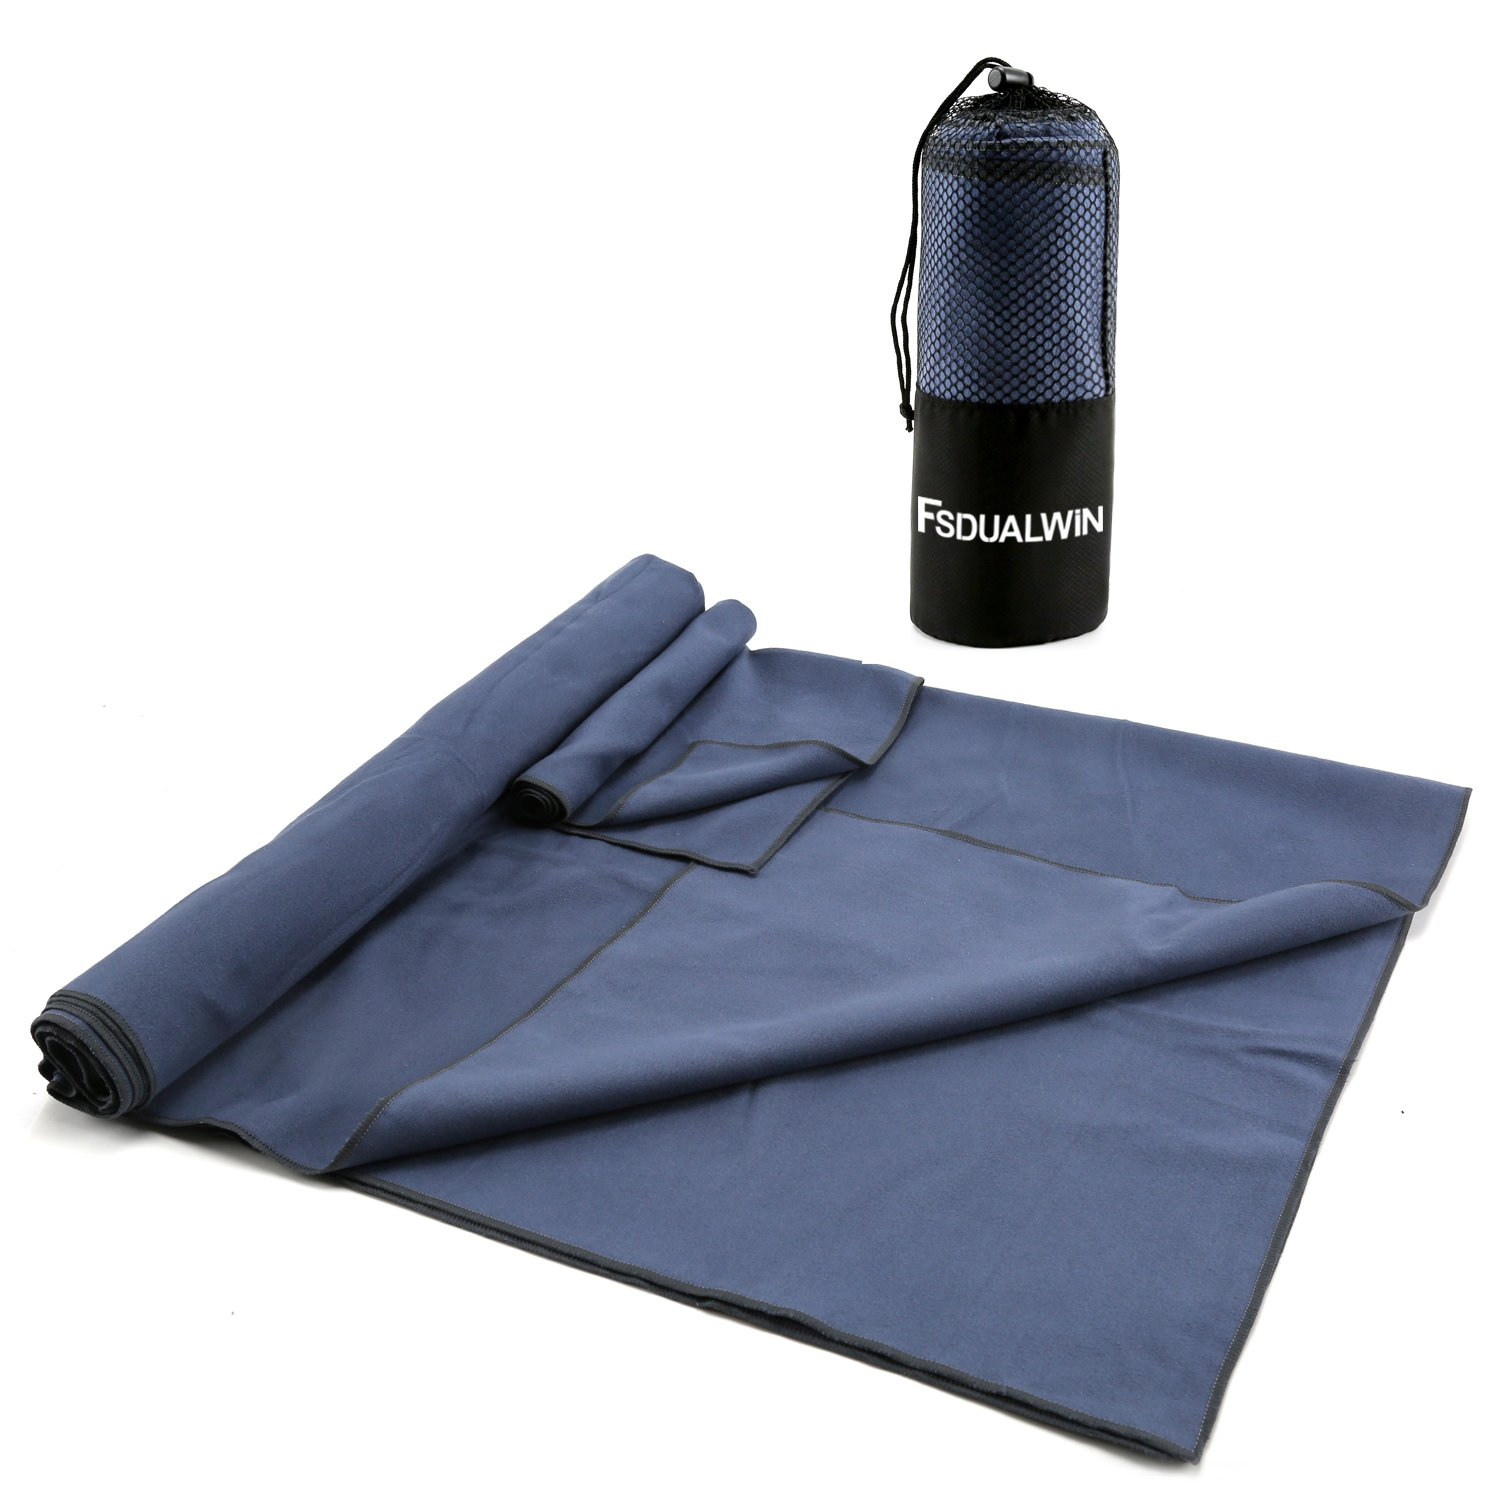 FSDUALWIN 2 Pack Microfiber Towel Set, XL Quick Drying /Absorbent/Antibacterial Swimming Towel Set (6032) with Hand/Face Towel (1414) + Mesh BAG for Travel, Beach, Swimming,Yoga or Bath.